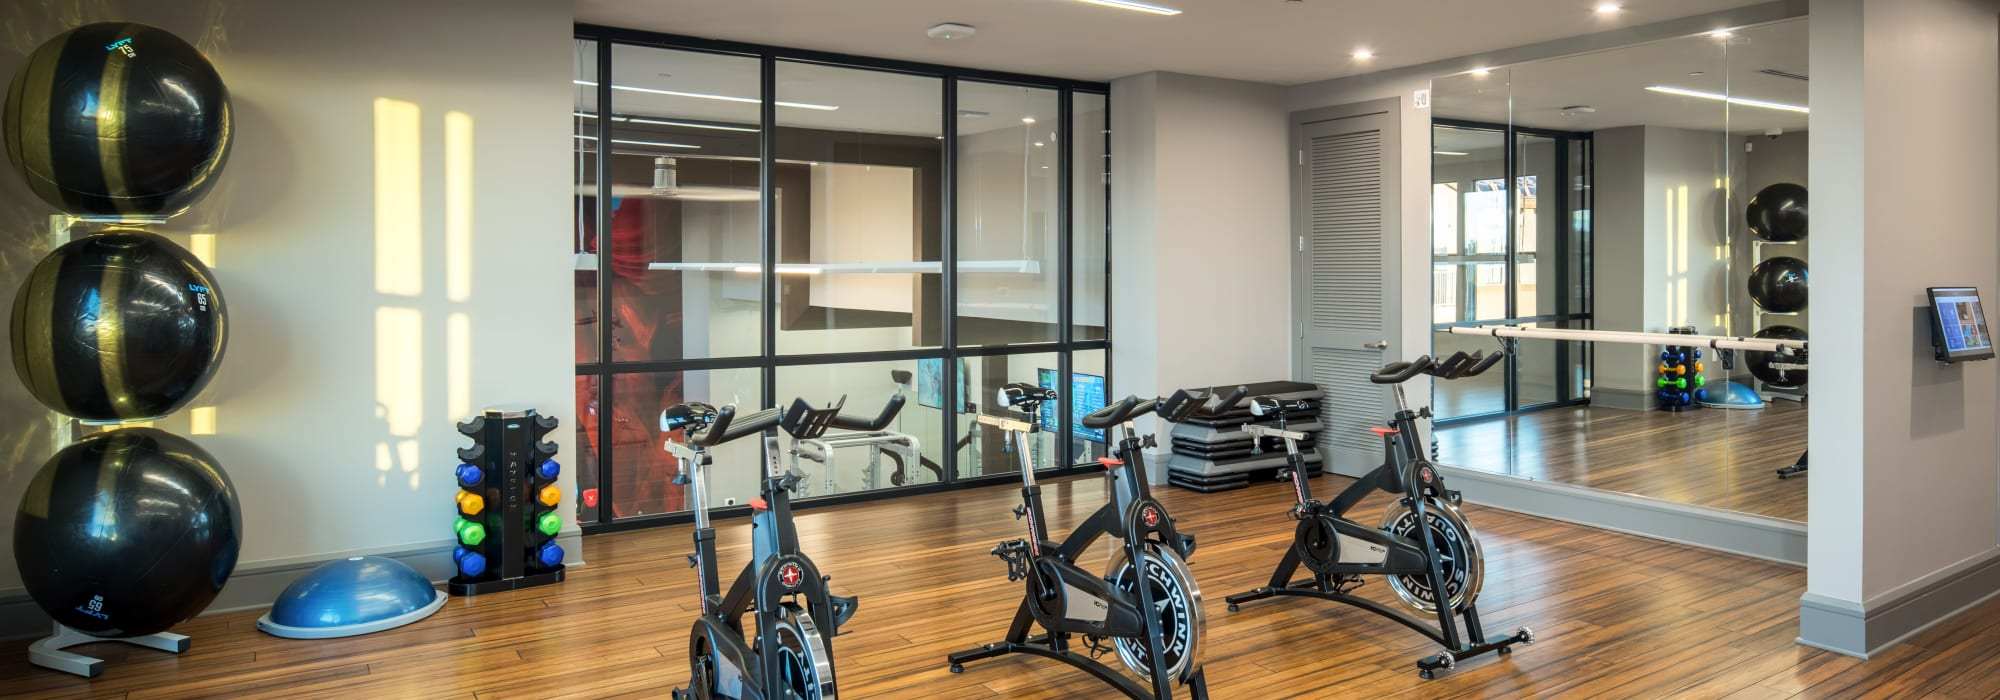 Spin class room at The Core Scottsdale in Scottsdale, Arizona